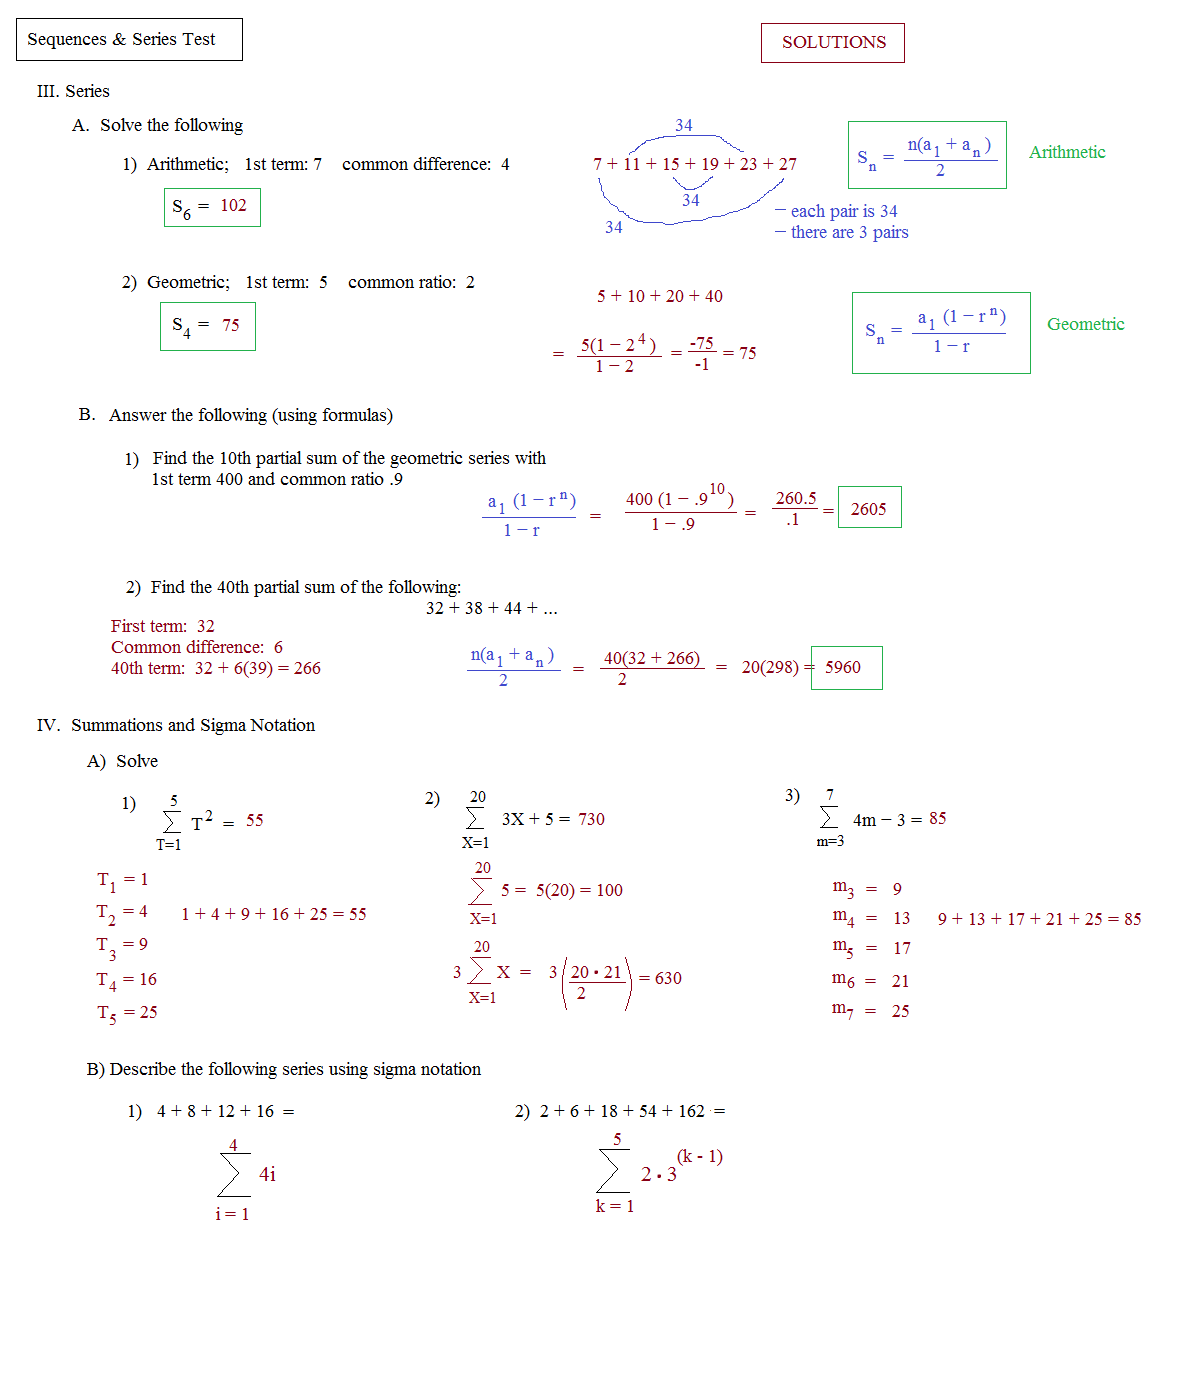 Math Plane   Sequences and Series I together with Alge 2 Worksheets   Sequences and Series Worksheets together with arithmetic sequences and series worksheet yooob org answers fabulous together with Arithmetic Sequences and Series Worksheet Answers Best Of furthermore Arithmetic Sequences And Series Worksheet Arithmetic Sequence likewise Geometric And Arithmetic Sequence Arithmetic Sequence Sum also Sequences And Series Worksheet Answers   Briefencounters besides arithmetic series worksheet – eurotekinc besides number series worksheets moreover 12 1 homework and practice arithmetic sequences also Arithmetic and Geometric Sequences  mon Core Alge 2 Homework furthermore geometric series worksheet – poliuretanoproyectadomadrid also  further arithmetic series worksheet math – leathercorduroys club further Quiz   Worksheet   Working with Arithmetic Series   Study furthermore . on sequences and series worksheet answers